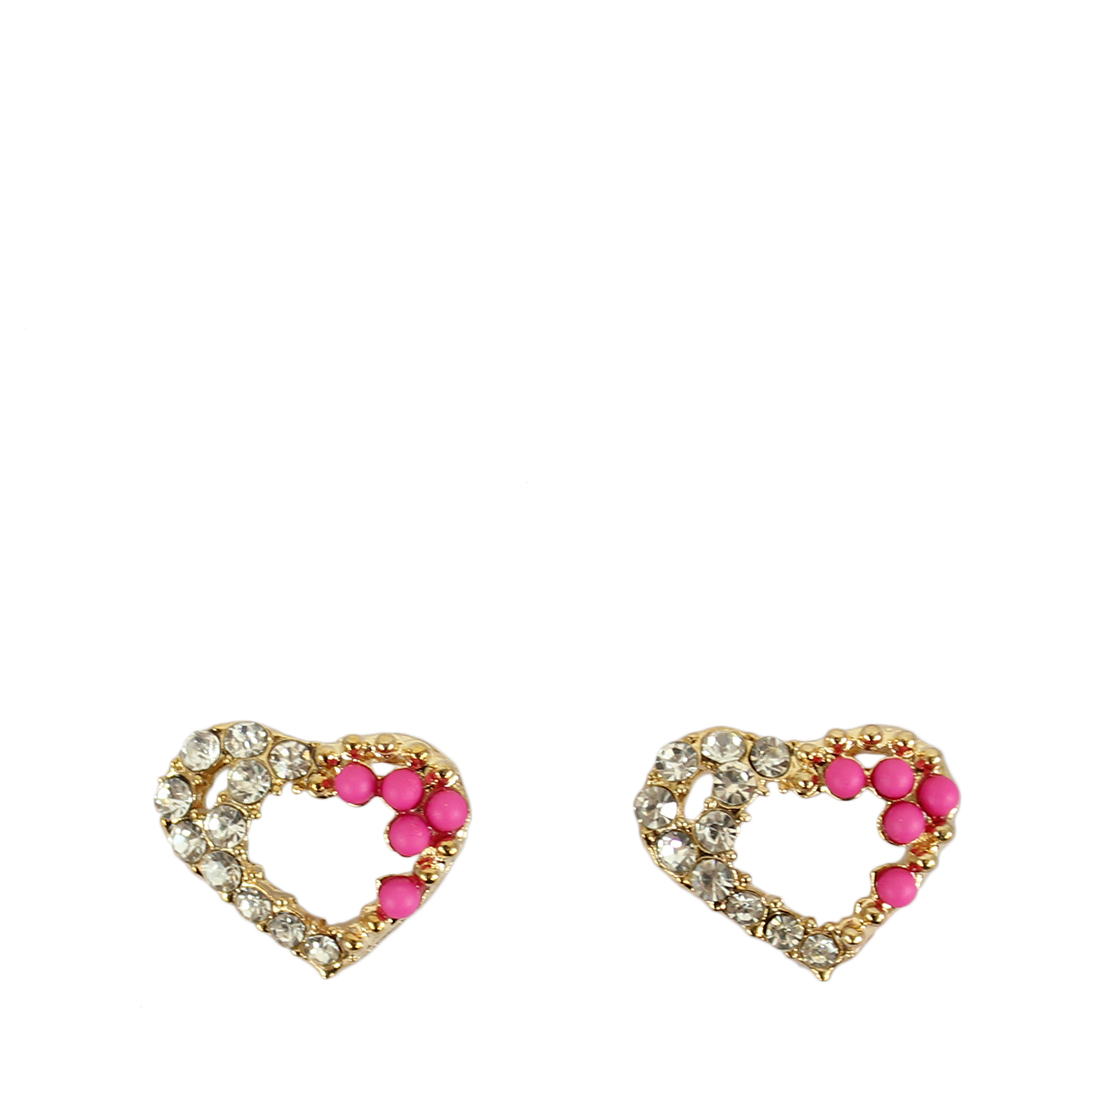 Heart with diamond and color on side